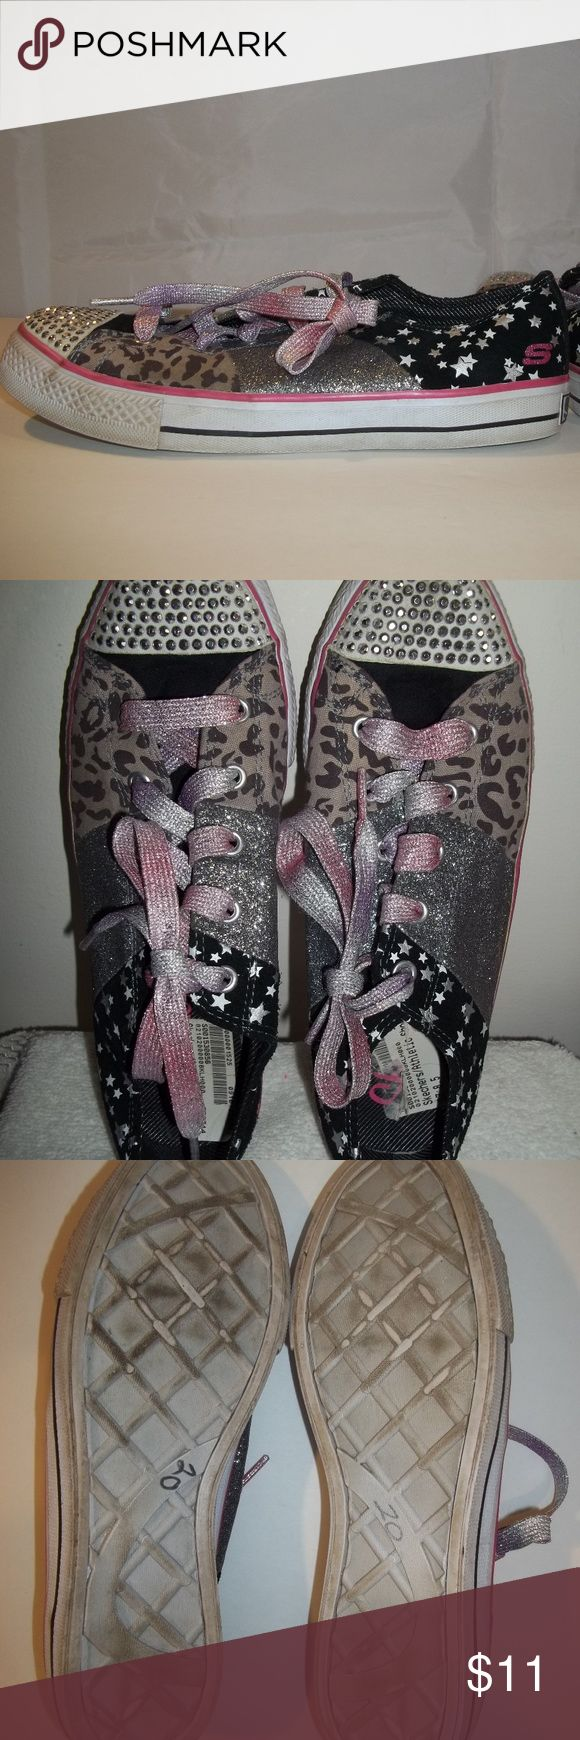 Skechers Shoes Stars Sparkle Leopard Size 8.5 Women's Sneakers Shoes  Brand: Skechers  Size: 8.5  Color: Multi color  Features: Pink/purple/silver laces   Stars, sparkle, leopard pattern  Faux studs on toe area  Material: Textile upper  Measurements (Outside bottom)  Top to bottom: 10.5 inches  Side to side (widest spot): 3.5 inches  Condition: Pre-owned in great condition.  Show some wear with plenty of wear left.  There is 20 marked on the bottom of each shoe. Skechers Shoes Sneakers